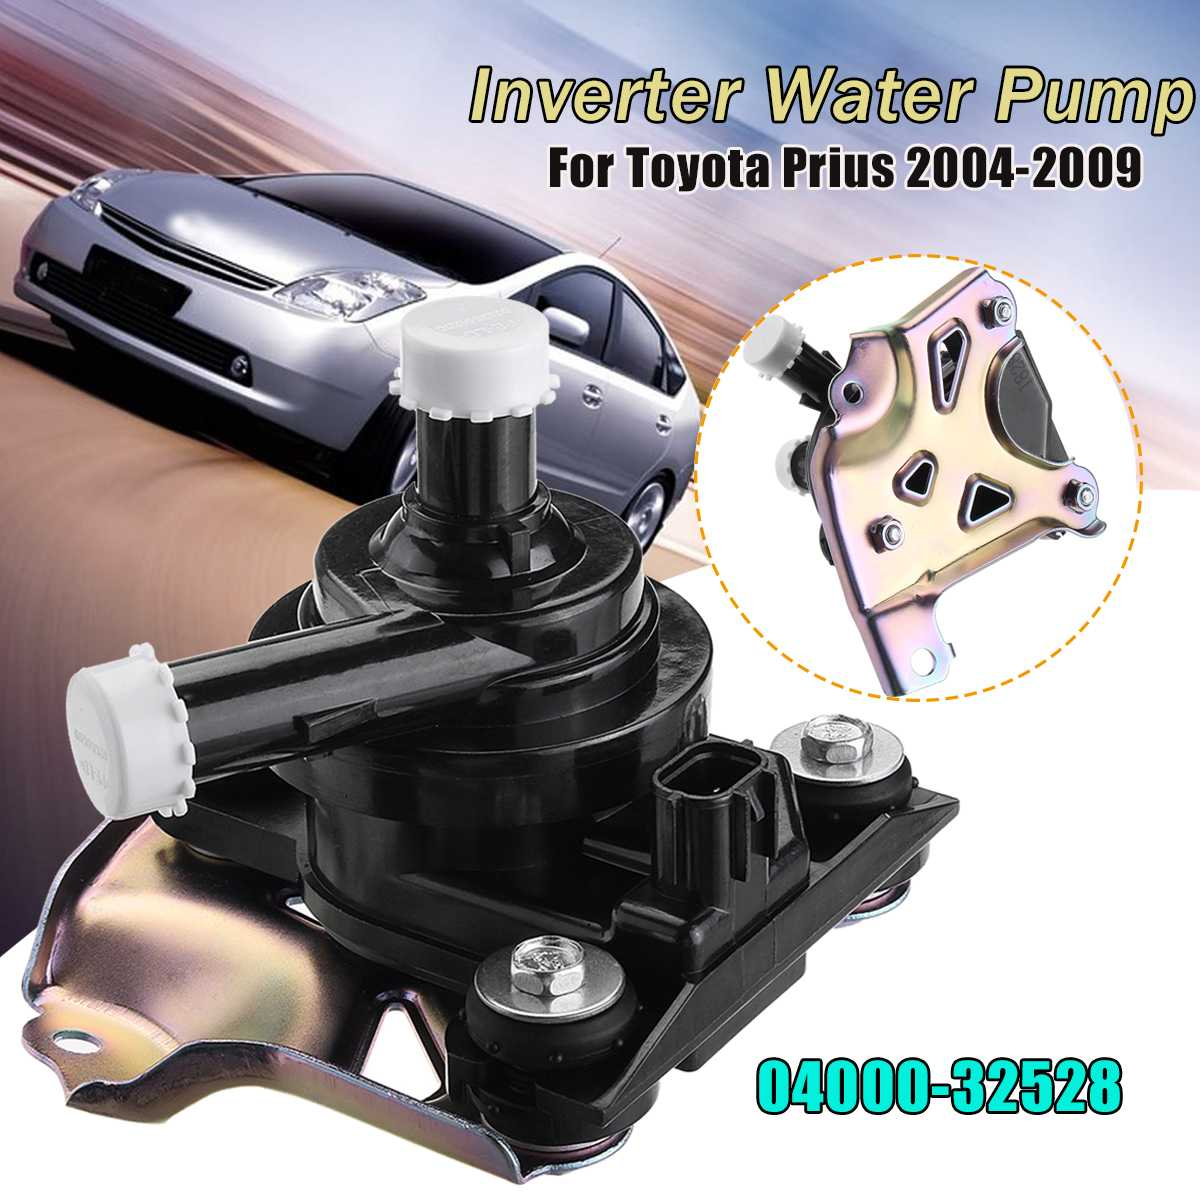 1PC 04000 32528 G902047031 Electric Inverter Water Pump For Toyota Prius 2004 2005 2006 2007 2008 2009-in Fuel Pumps from Automobiles & Motorcycles    1